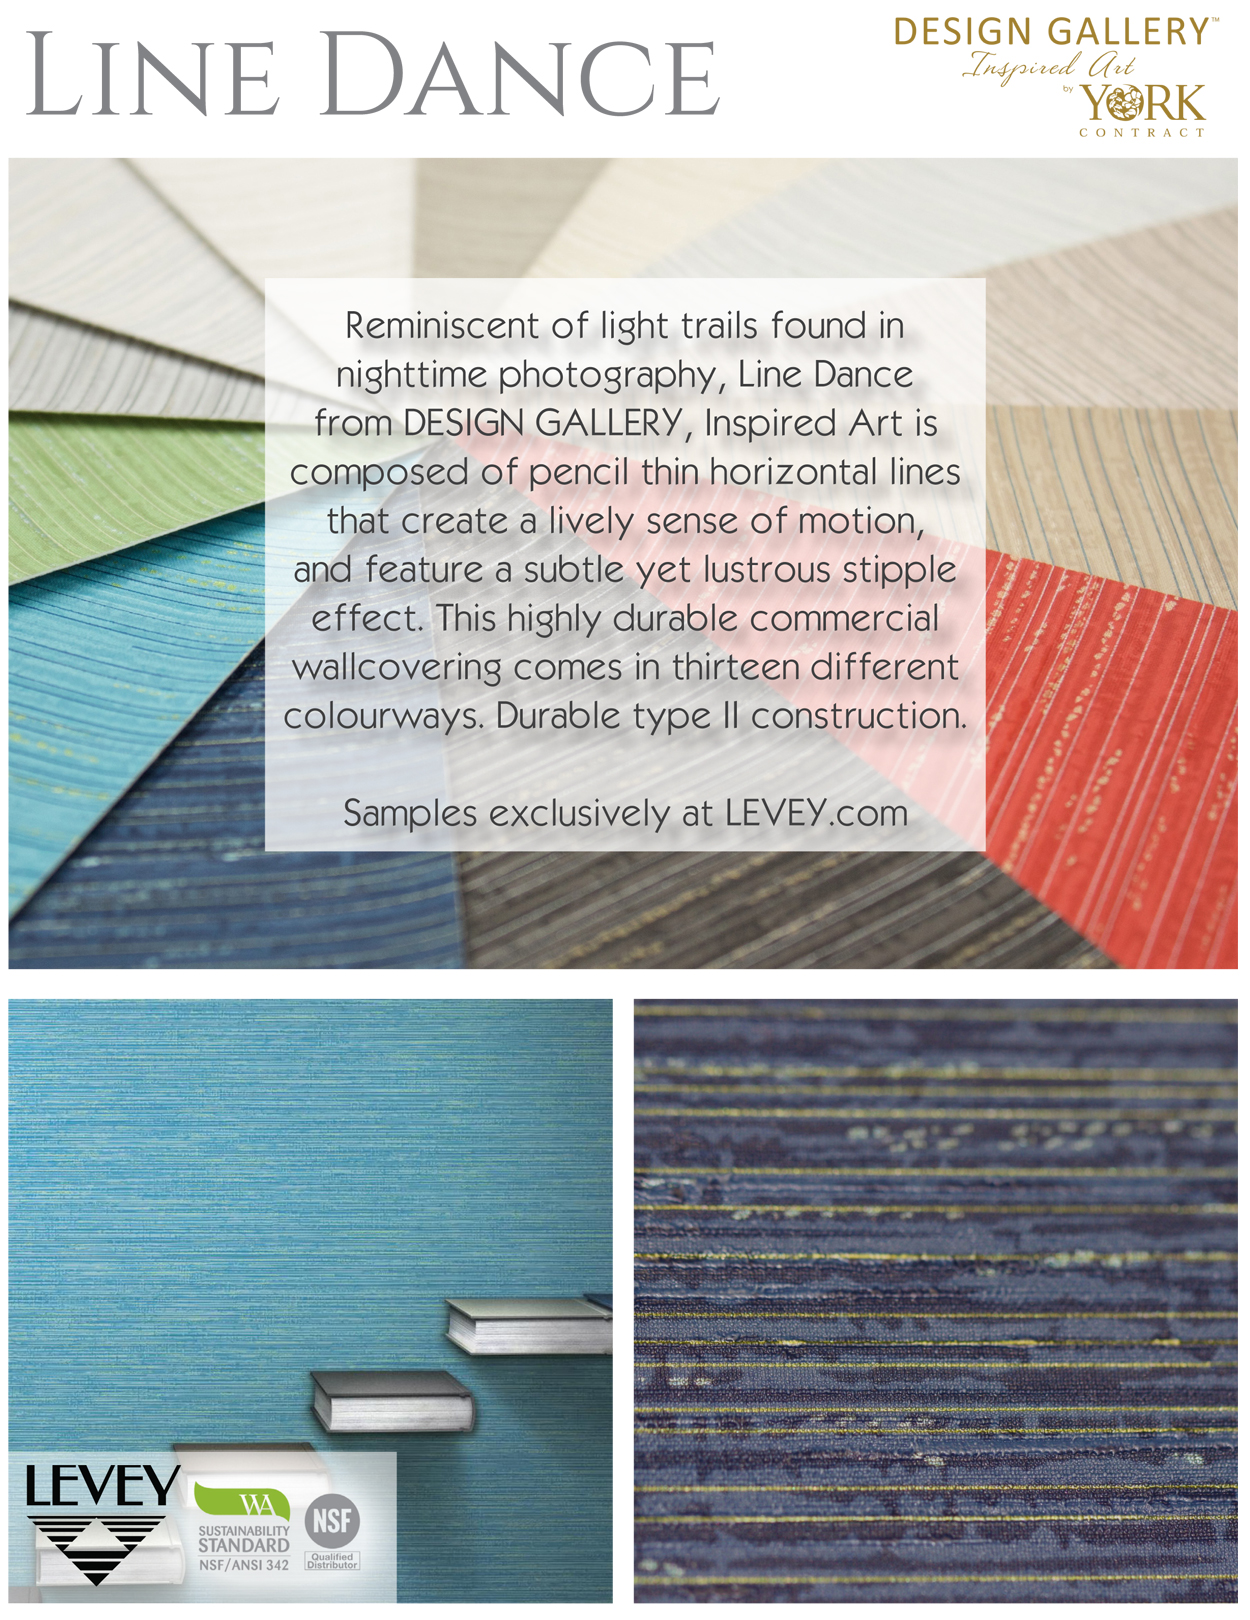 Line Dance Wallcovering from Levey Wallcoverings and Architectural Finishes